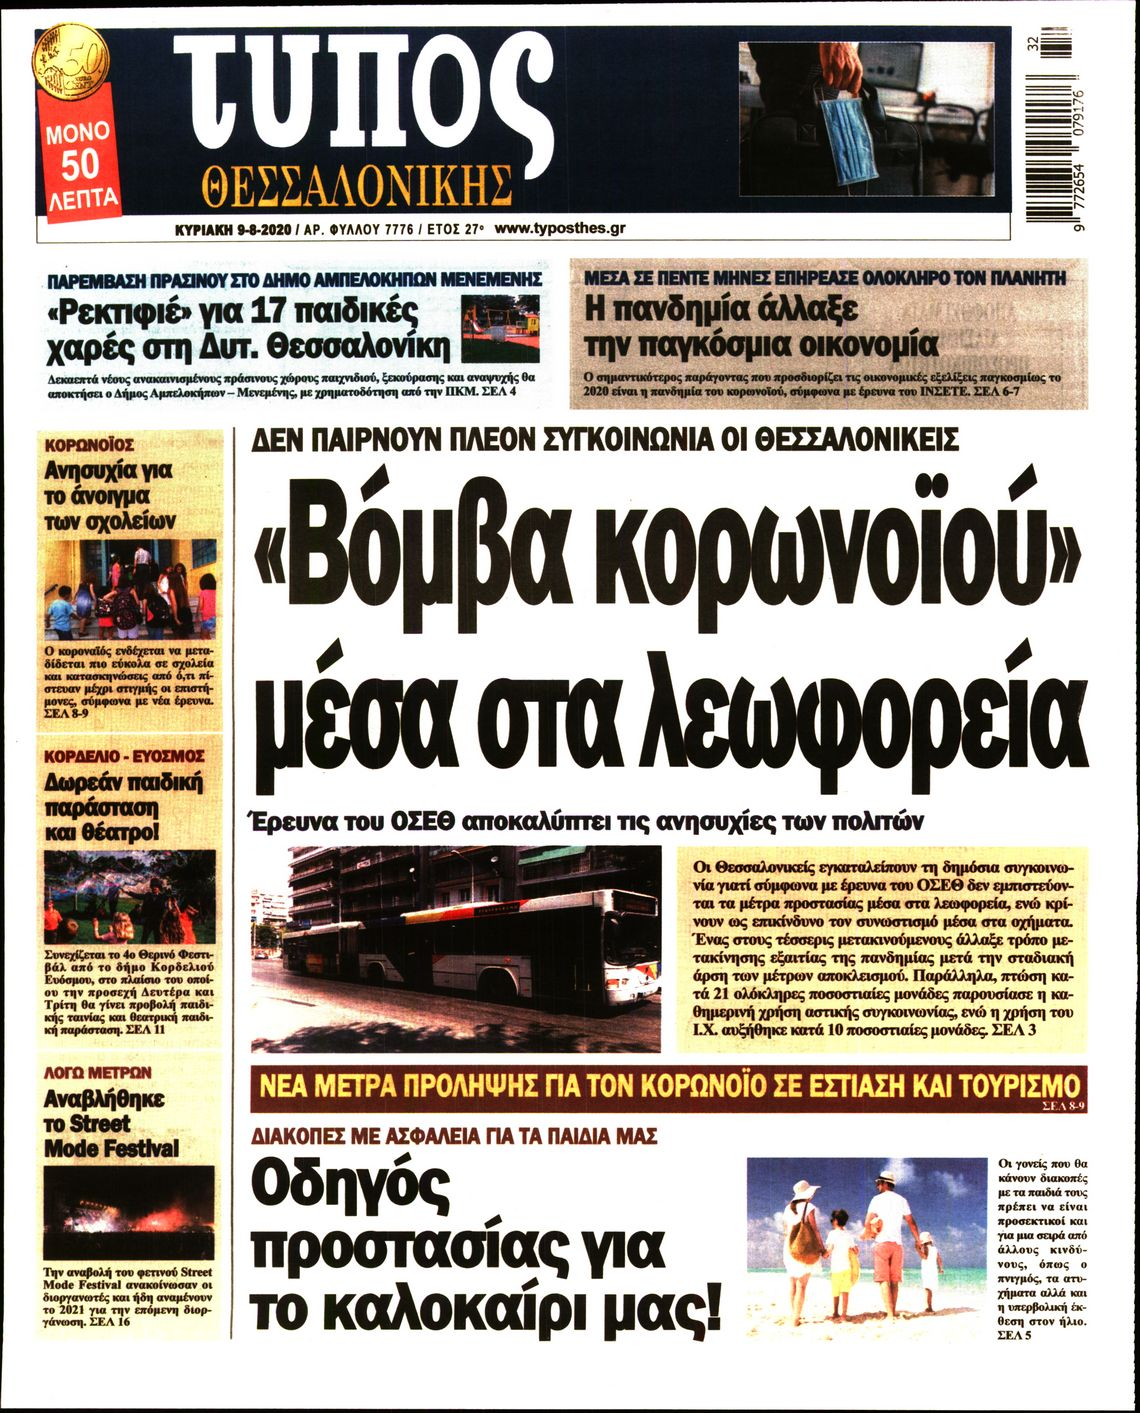 https://www.newsbeast.gr/files/1/newspapers/2020/08/09/27322720_375.jpg